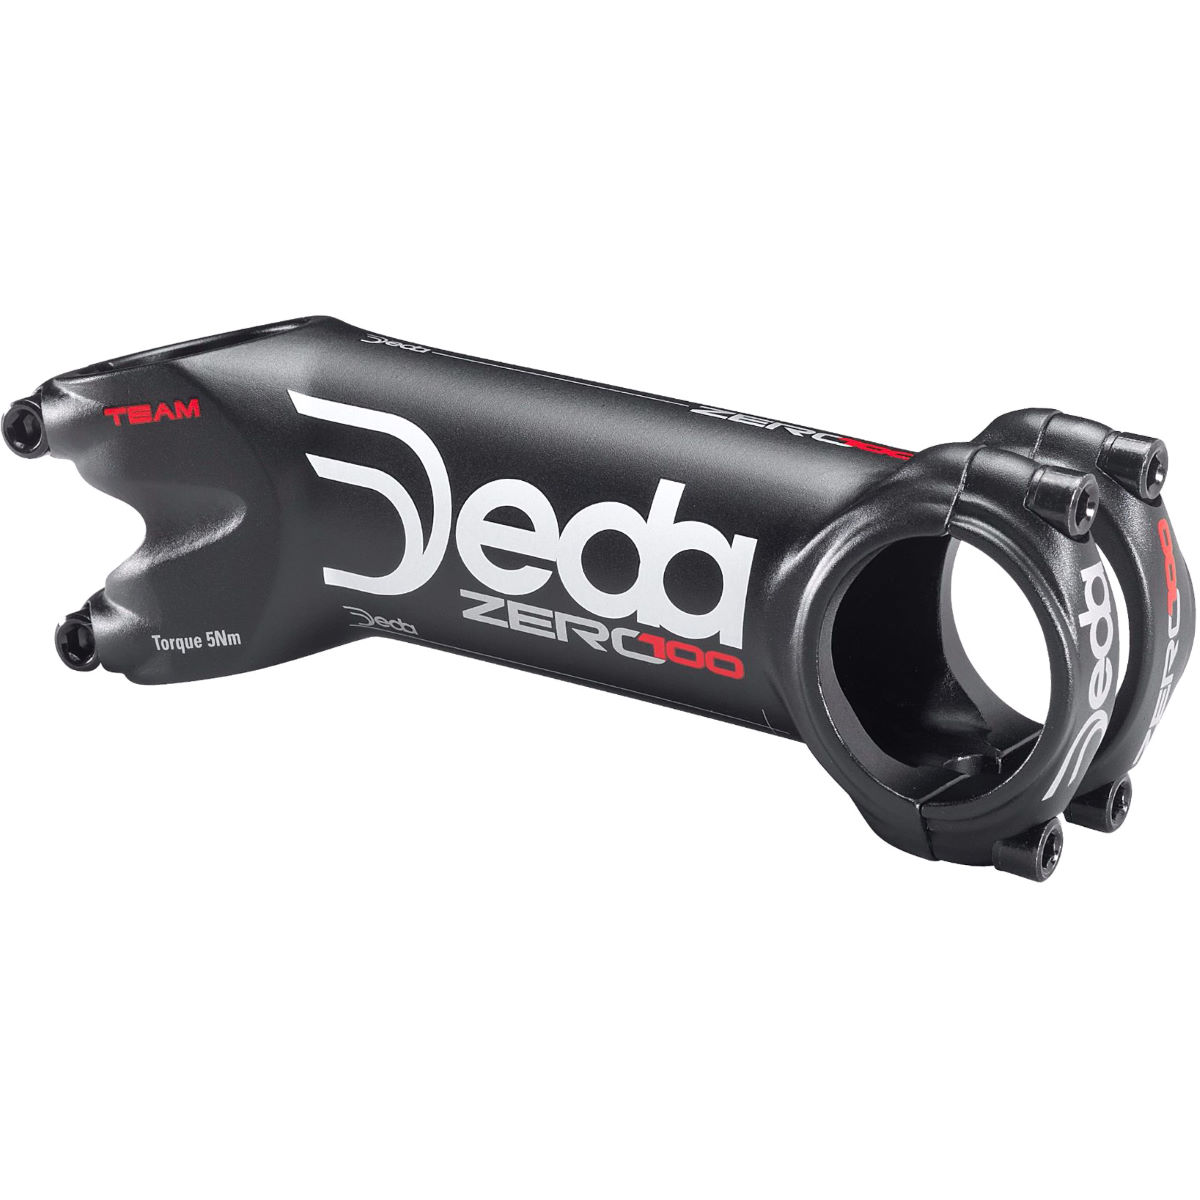 Deda Deda Zero100 Team Stem   Stems